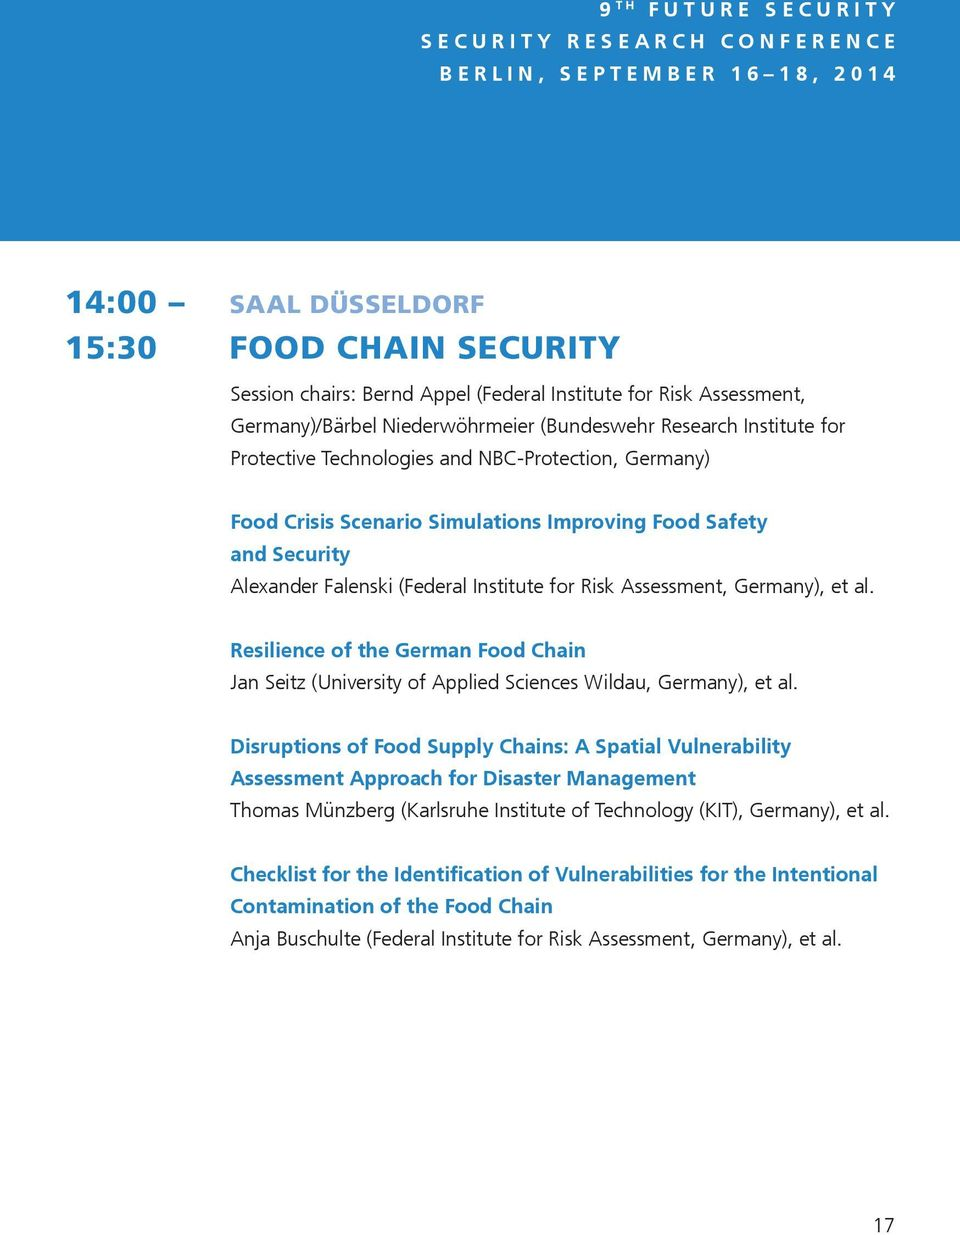 Risk Assessment, Germany), et al. Resilience of the German Food Chain Jan Seitz (University of Applied Sciences Wildau, Germany), et al.